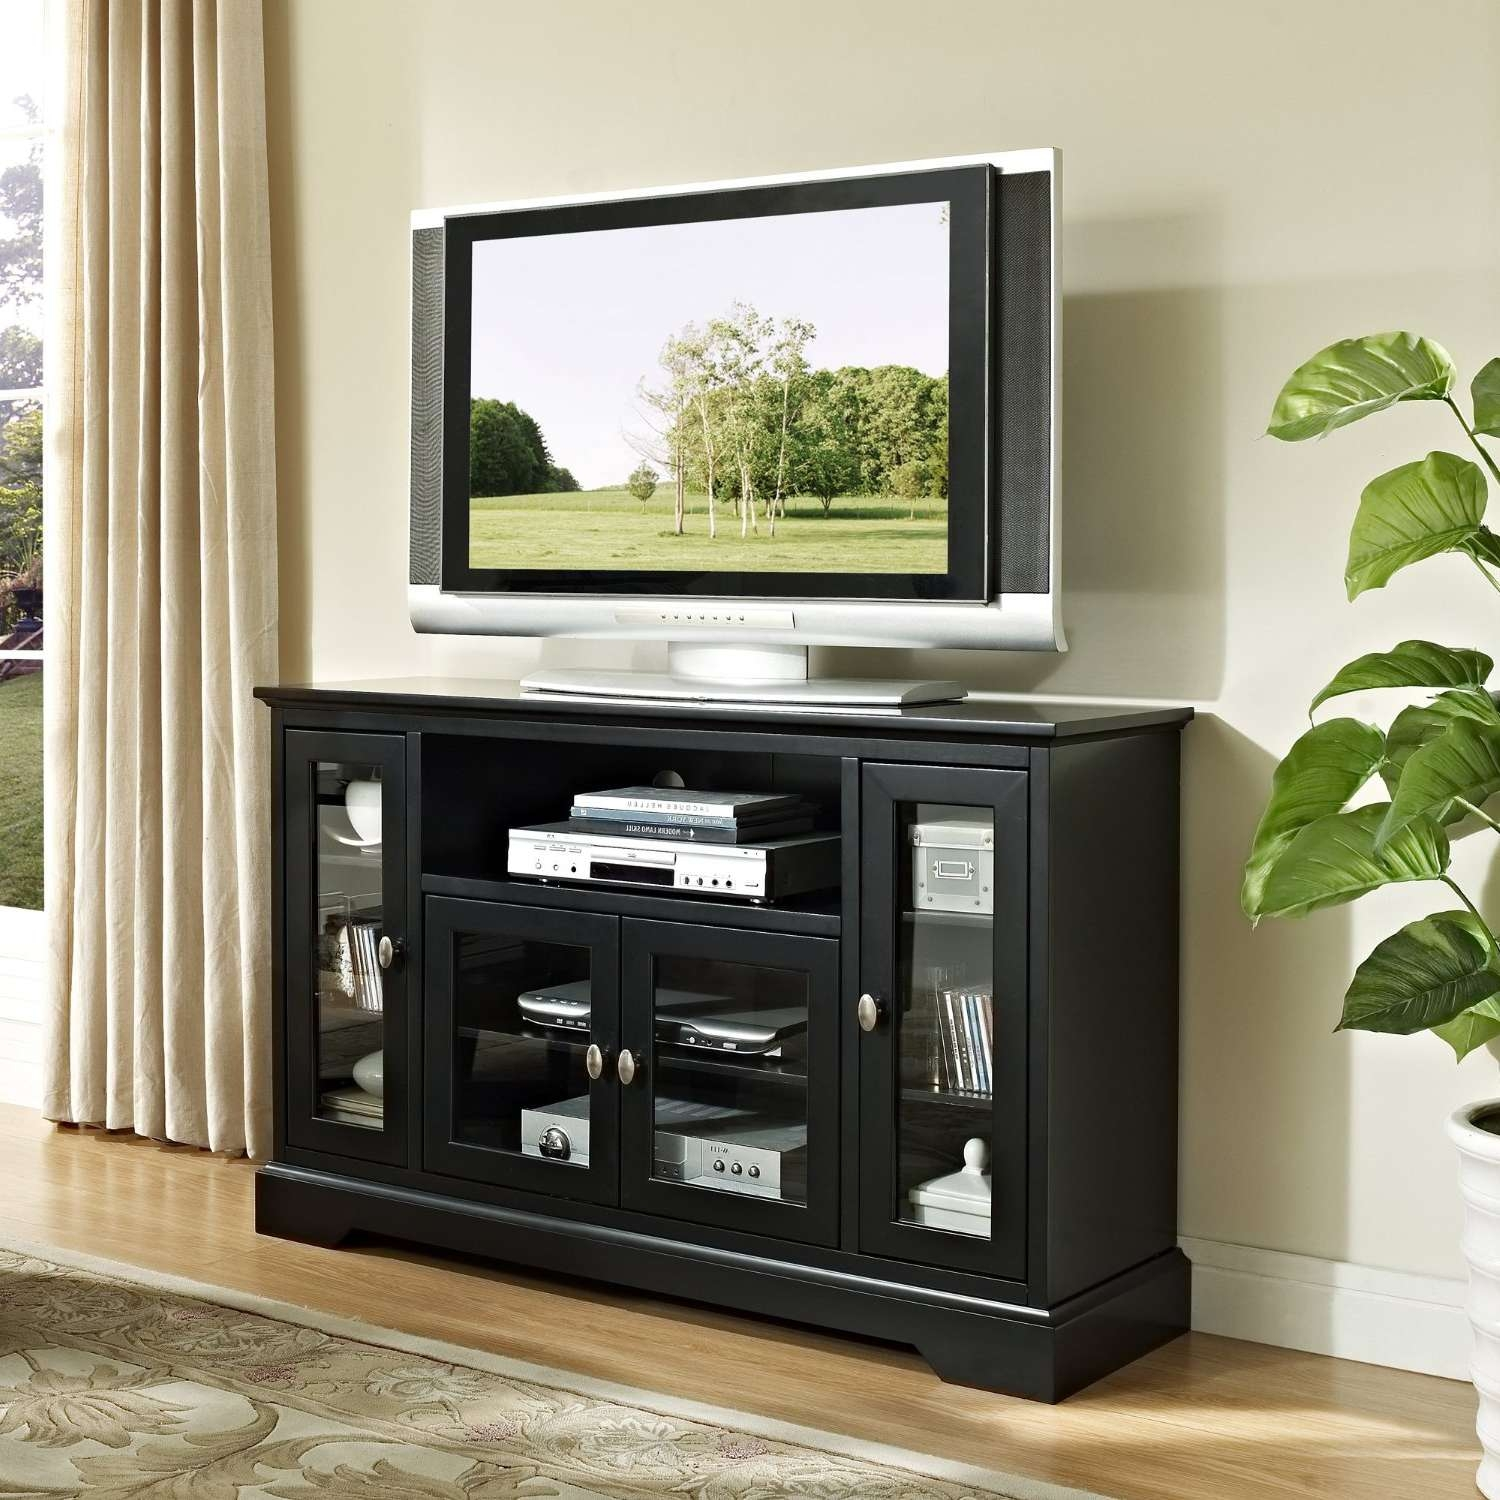 Light Wood Tv Stand Simple Room With Ikea Besta Media Cabinet Of Intended For Tv Cabinets With Glass Doors (View 17 of 20)